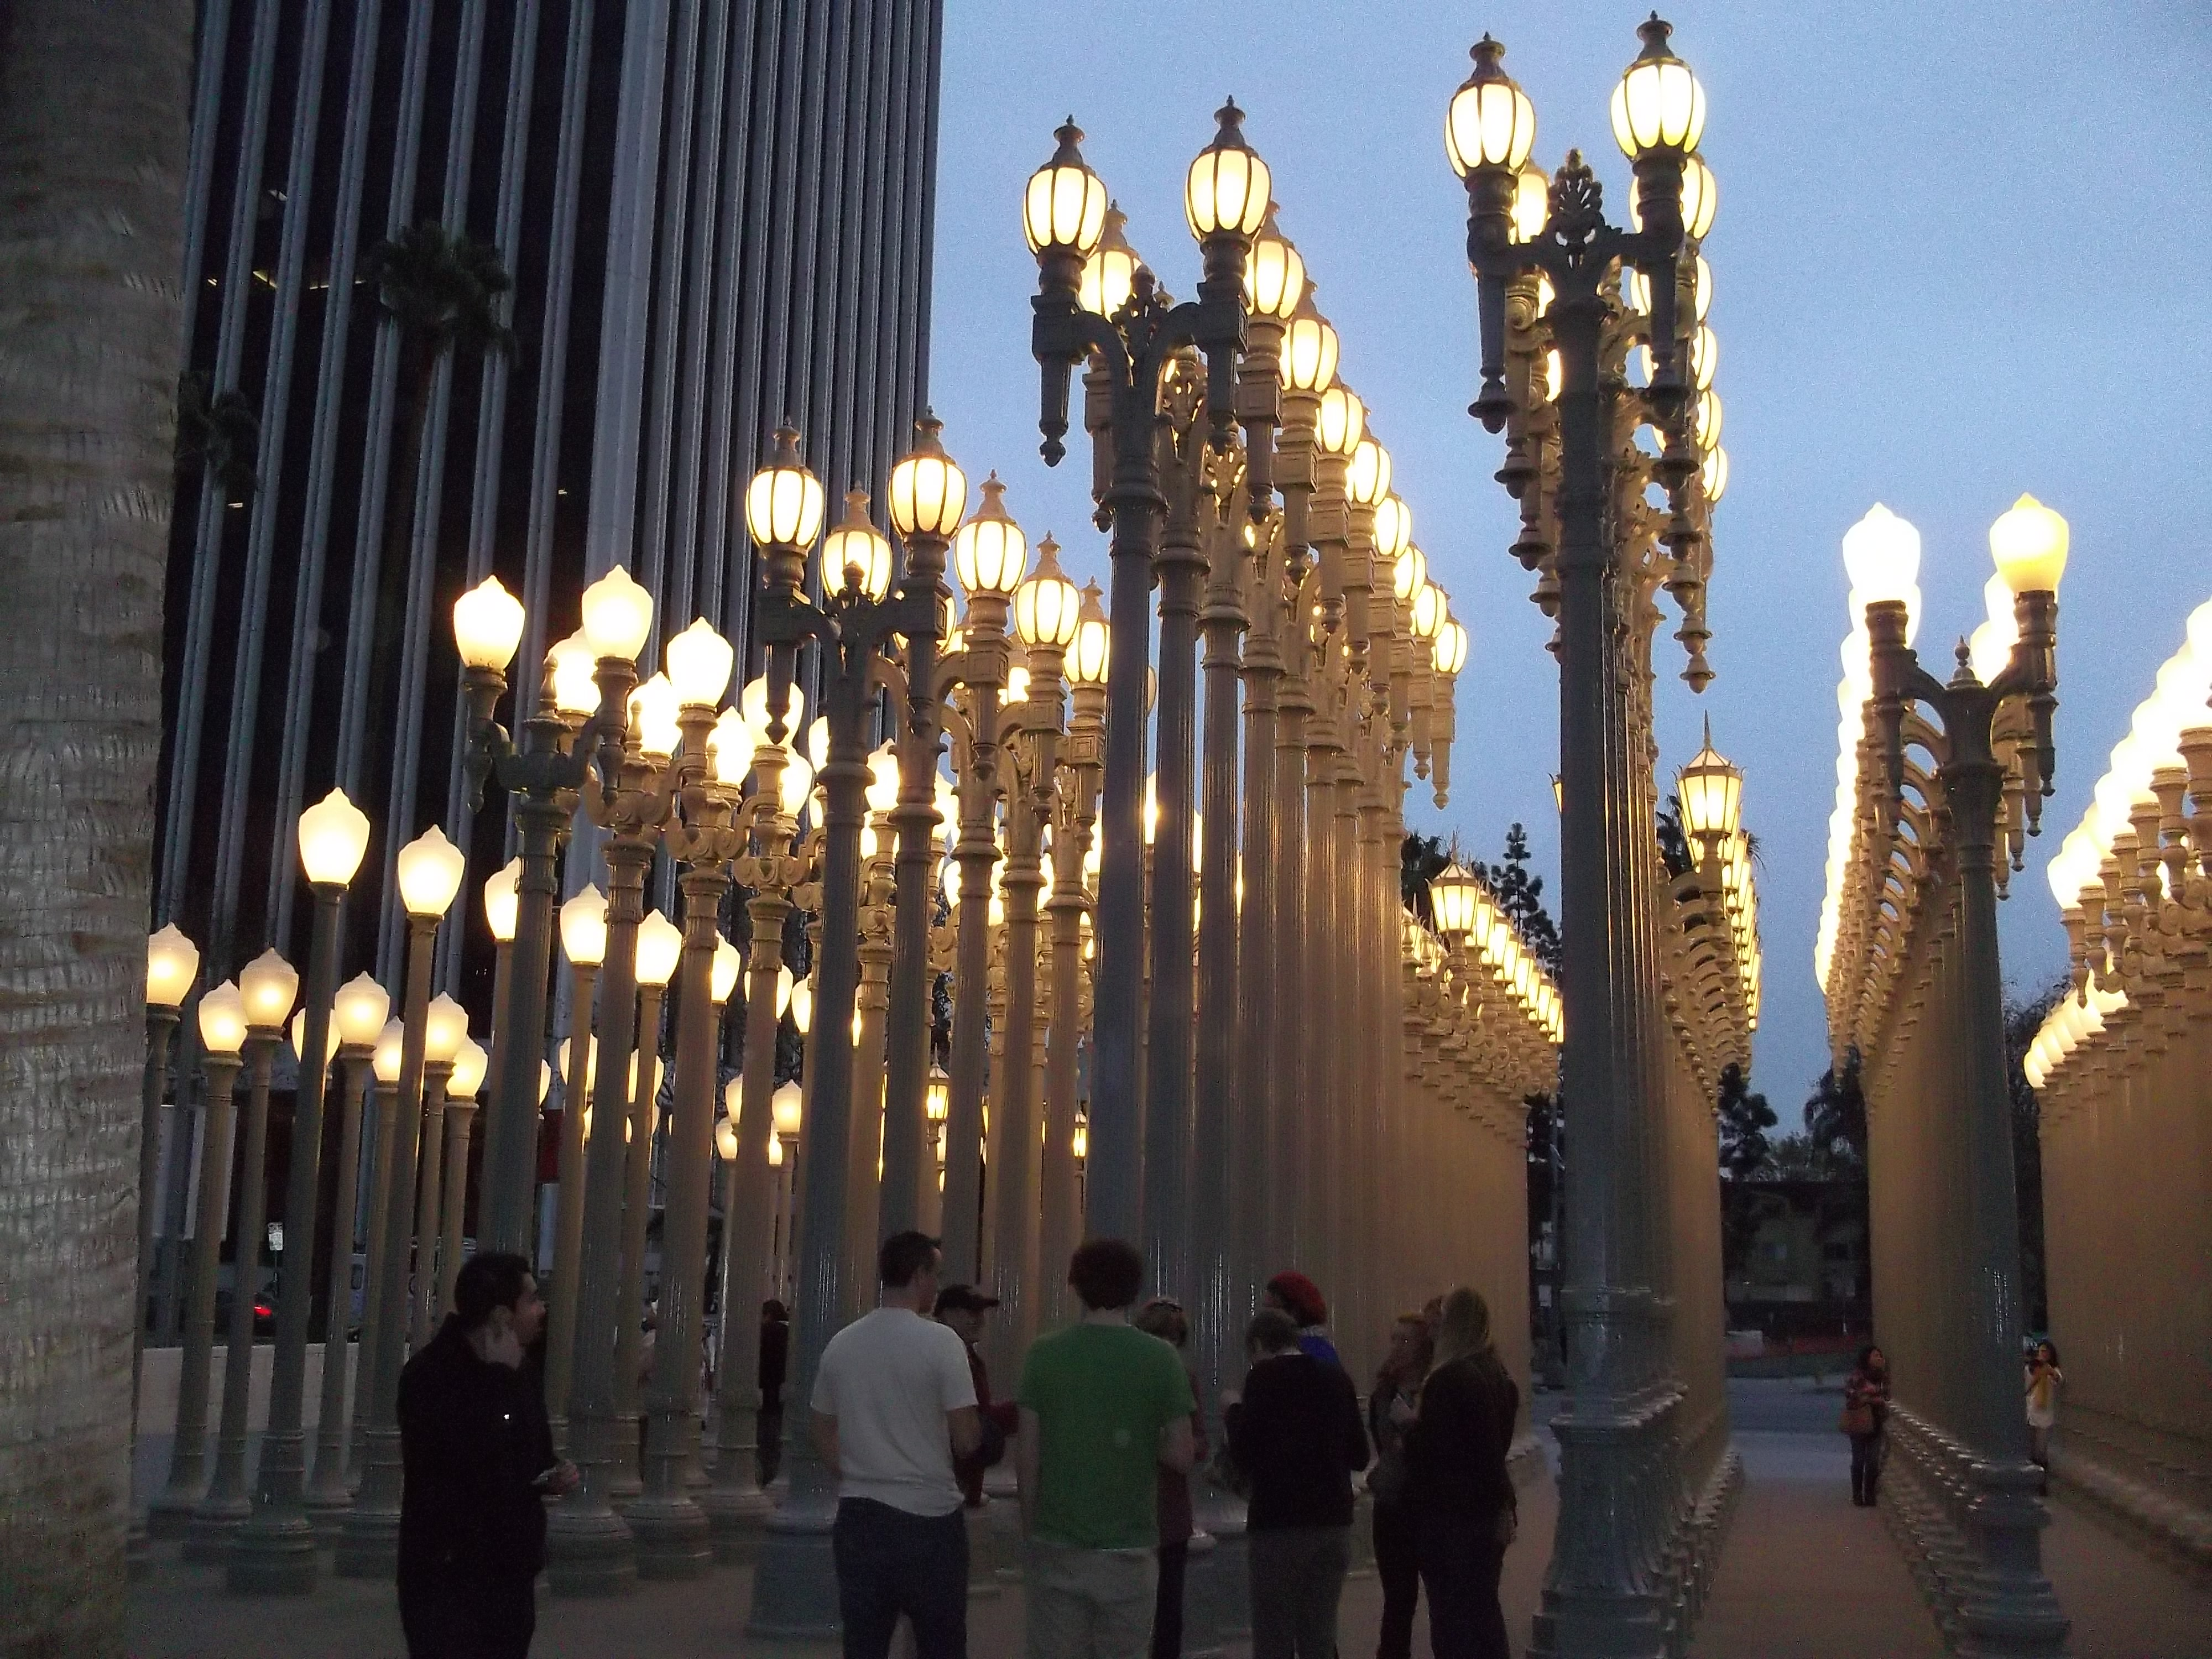 Captivating Urban Light By Chris Burden At LACMA